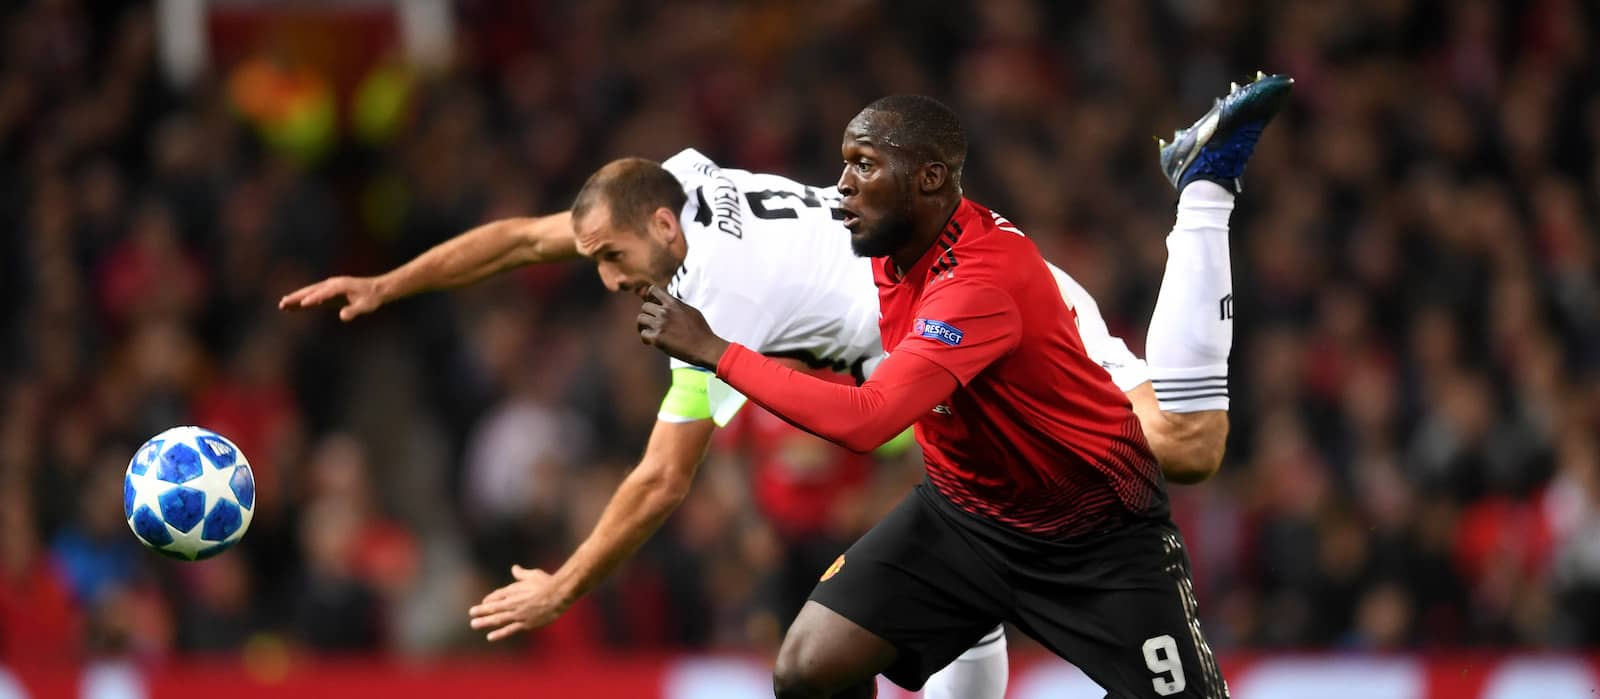 Manchester United fans furious with Romelu Lukaku's performance vs Juventus